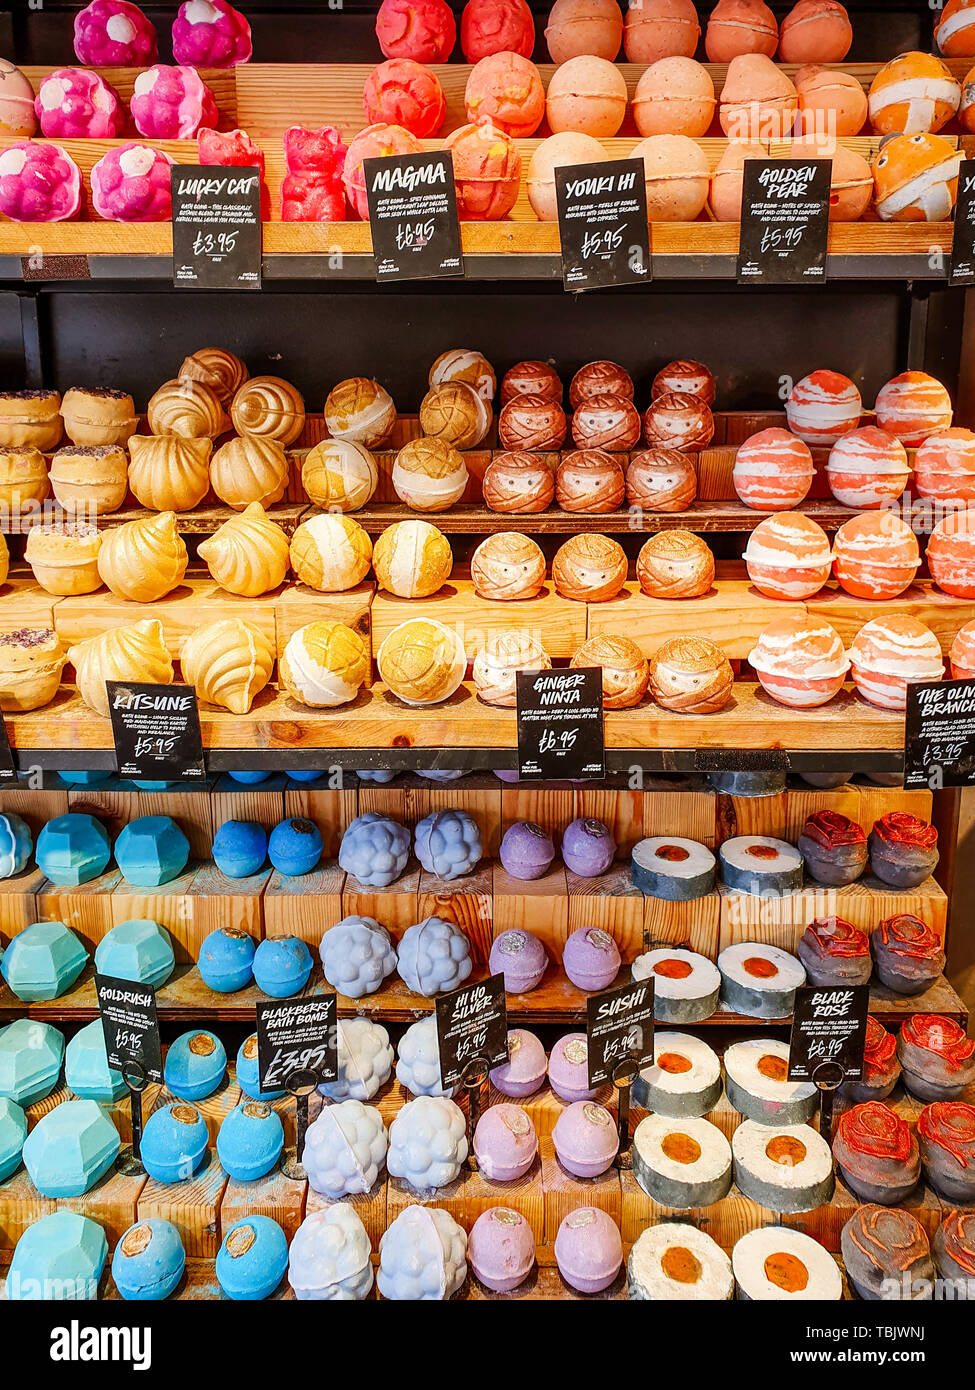 LEEDS, UK - JUNE 1ST 2019: Lush in Leeds city centre selling a variety of very colourful bath bombs - Stock Image